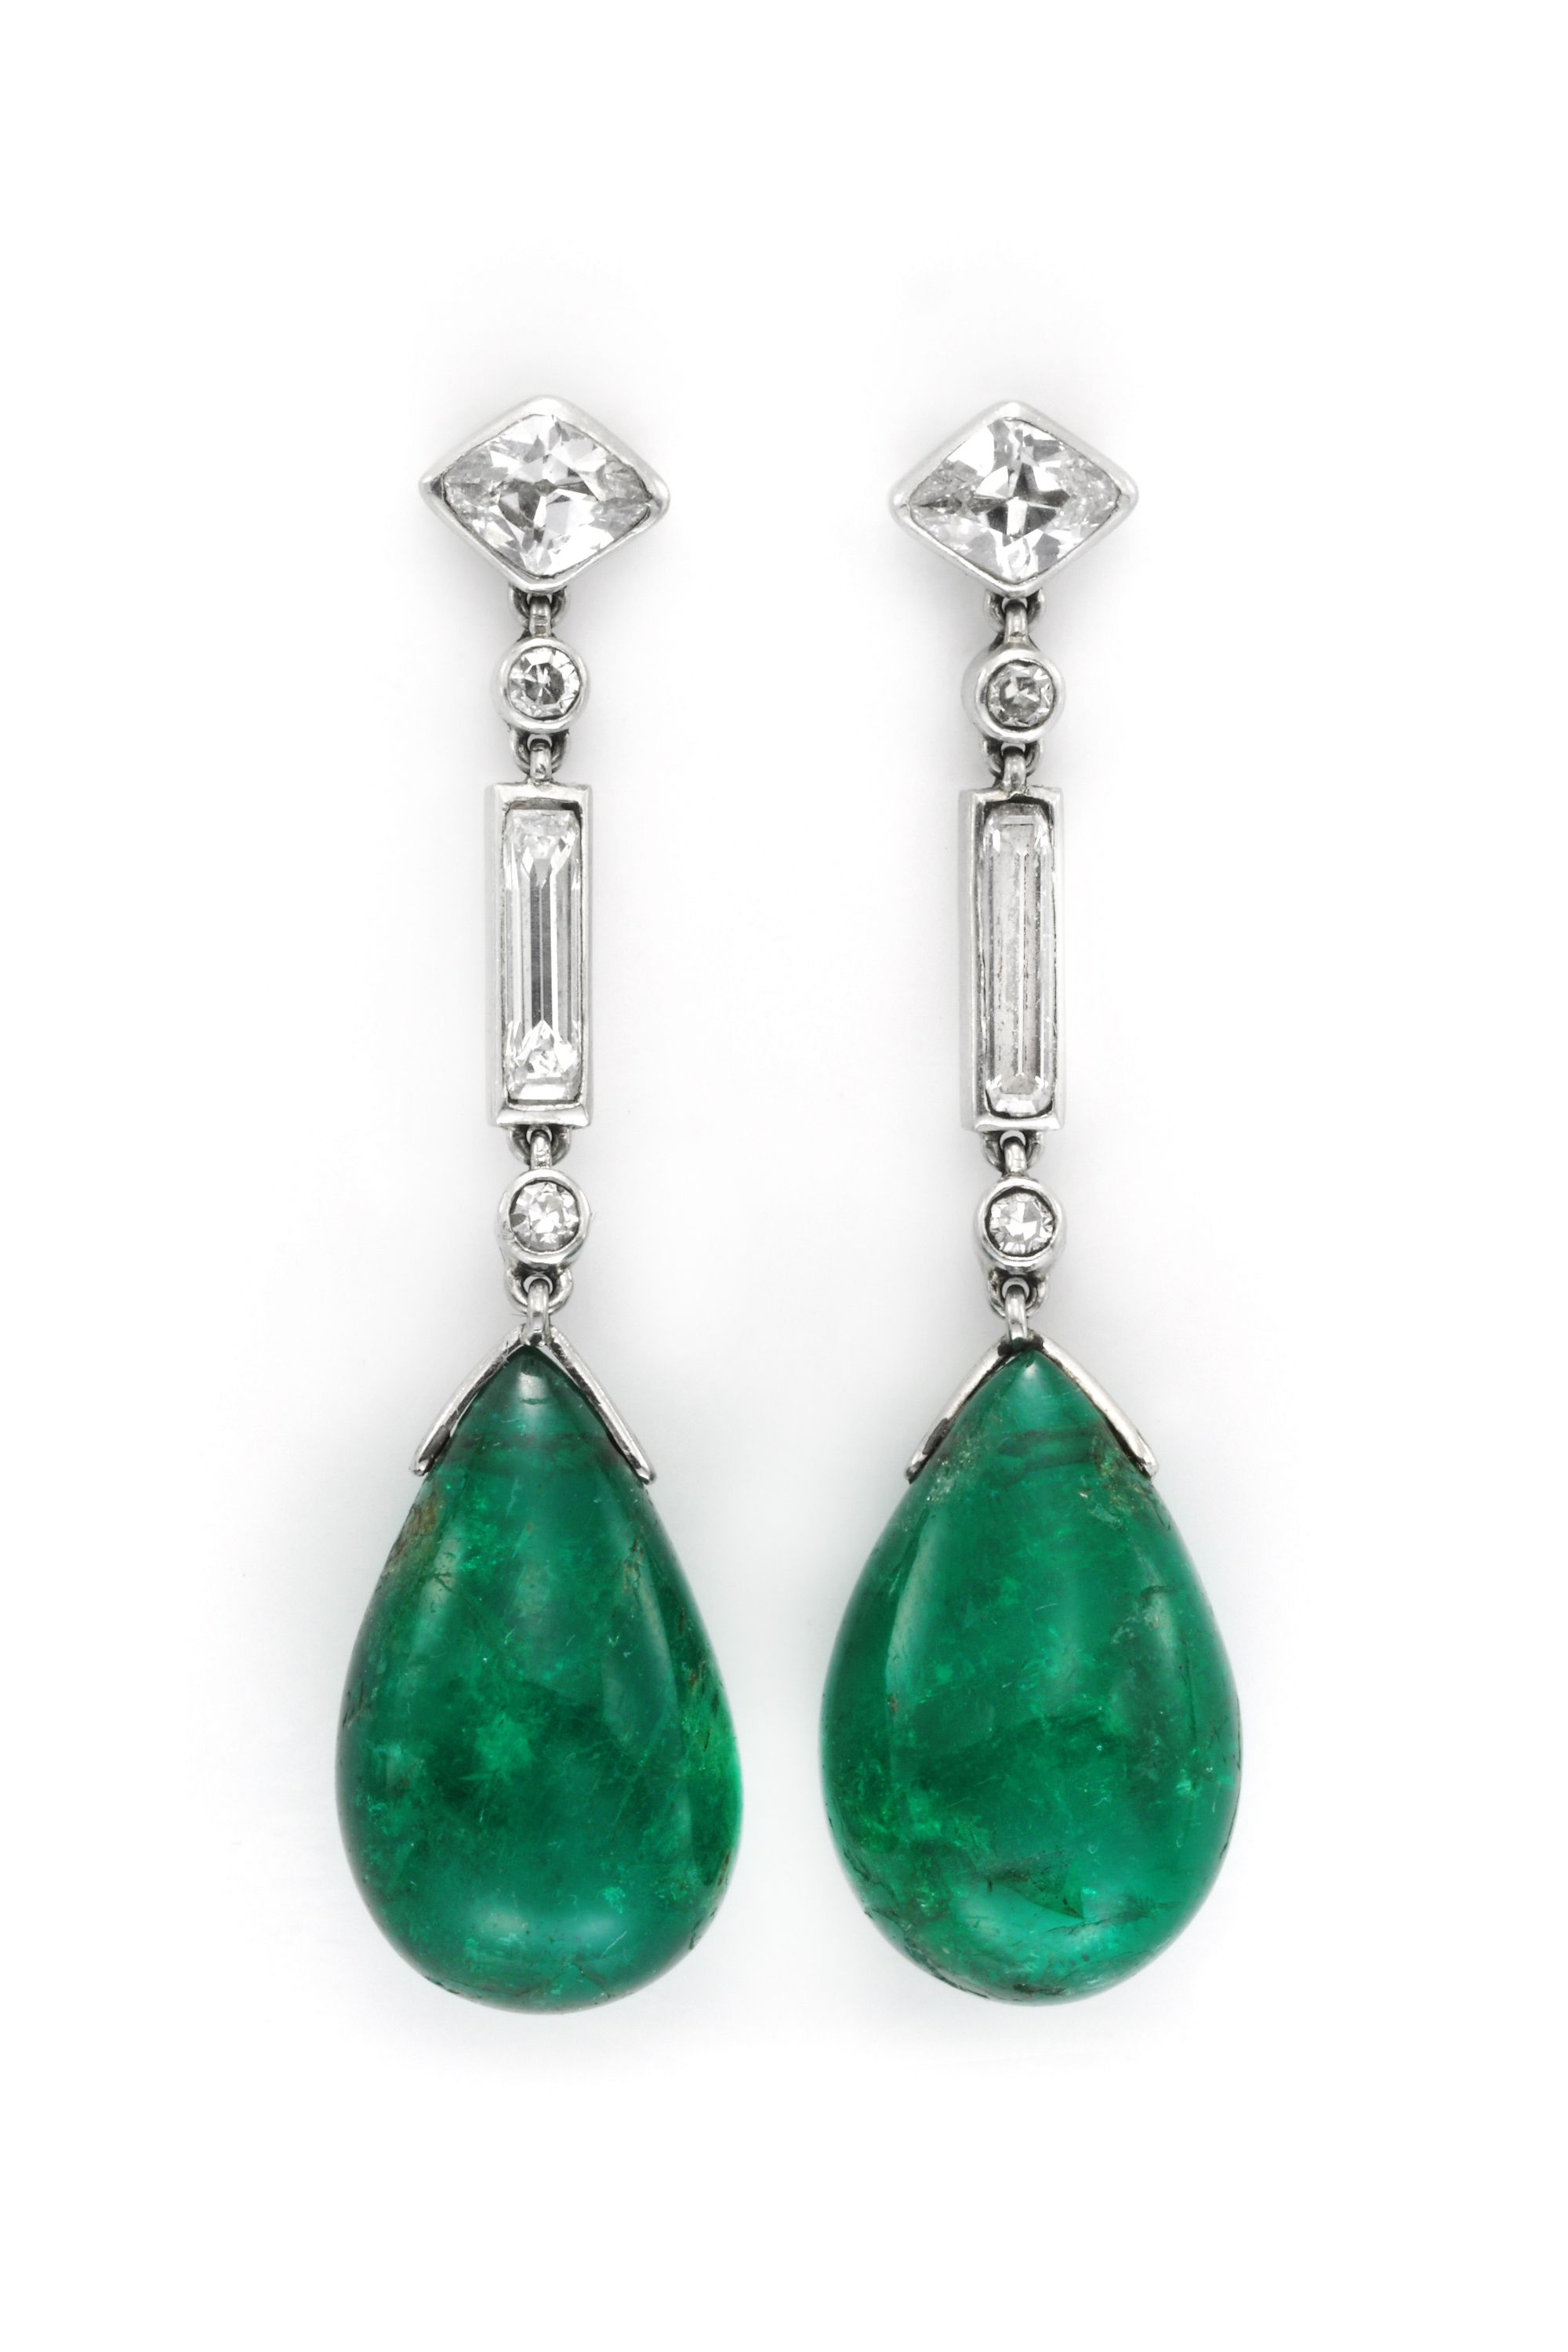 A Pair Of Art Deco Emerald And Diamond Ear Pendants By Cartier Circa 1925 Available At Fd Gallery Inspired